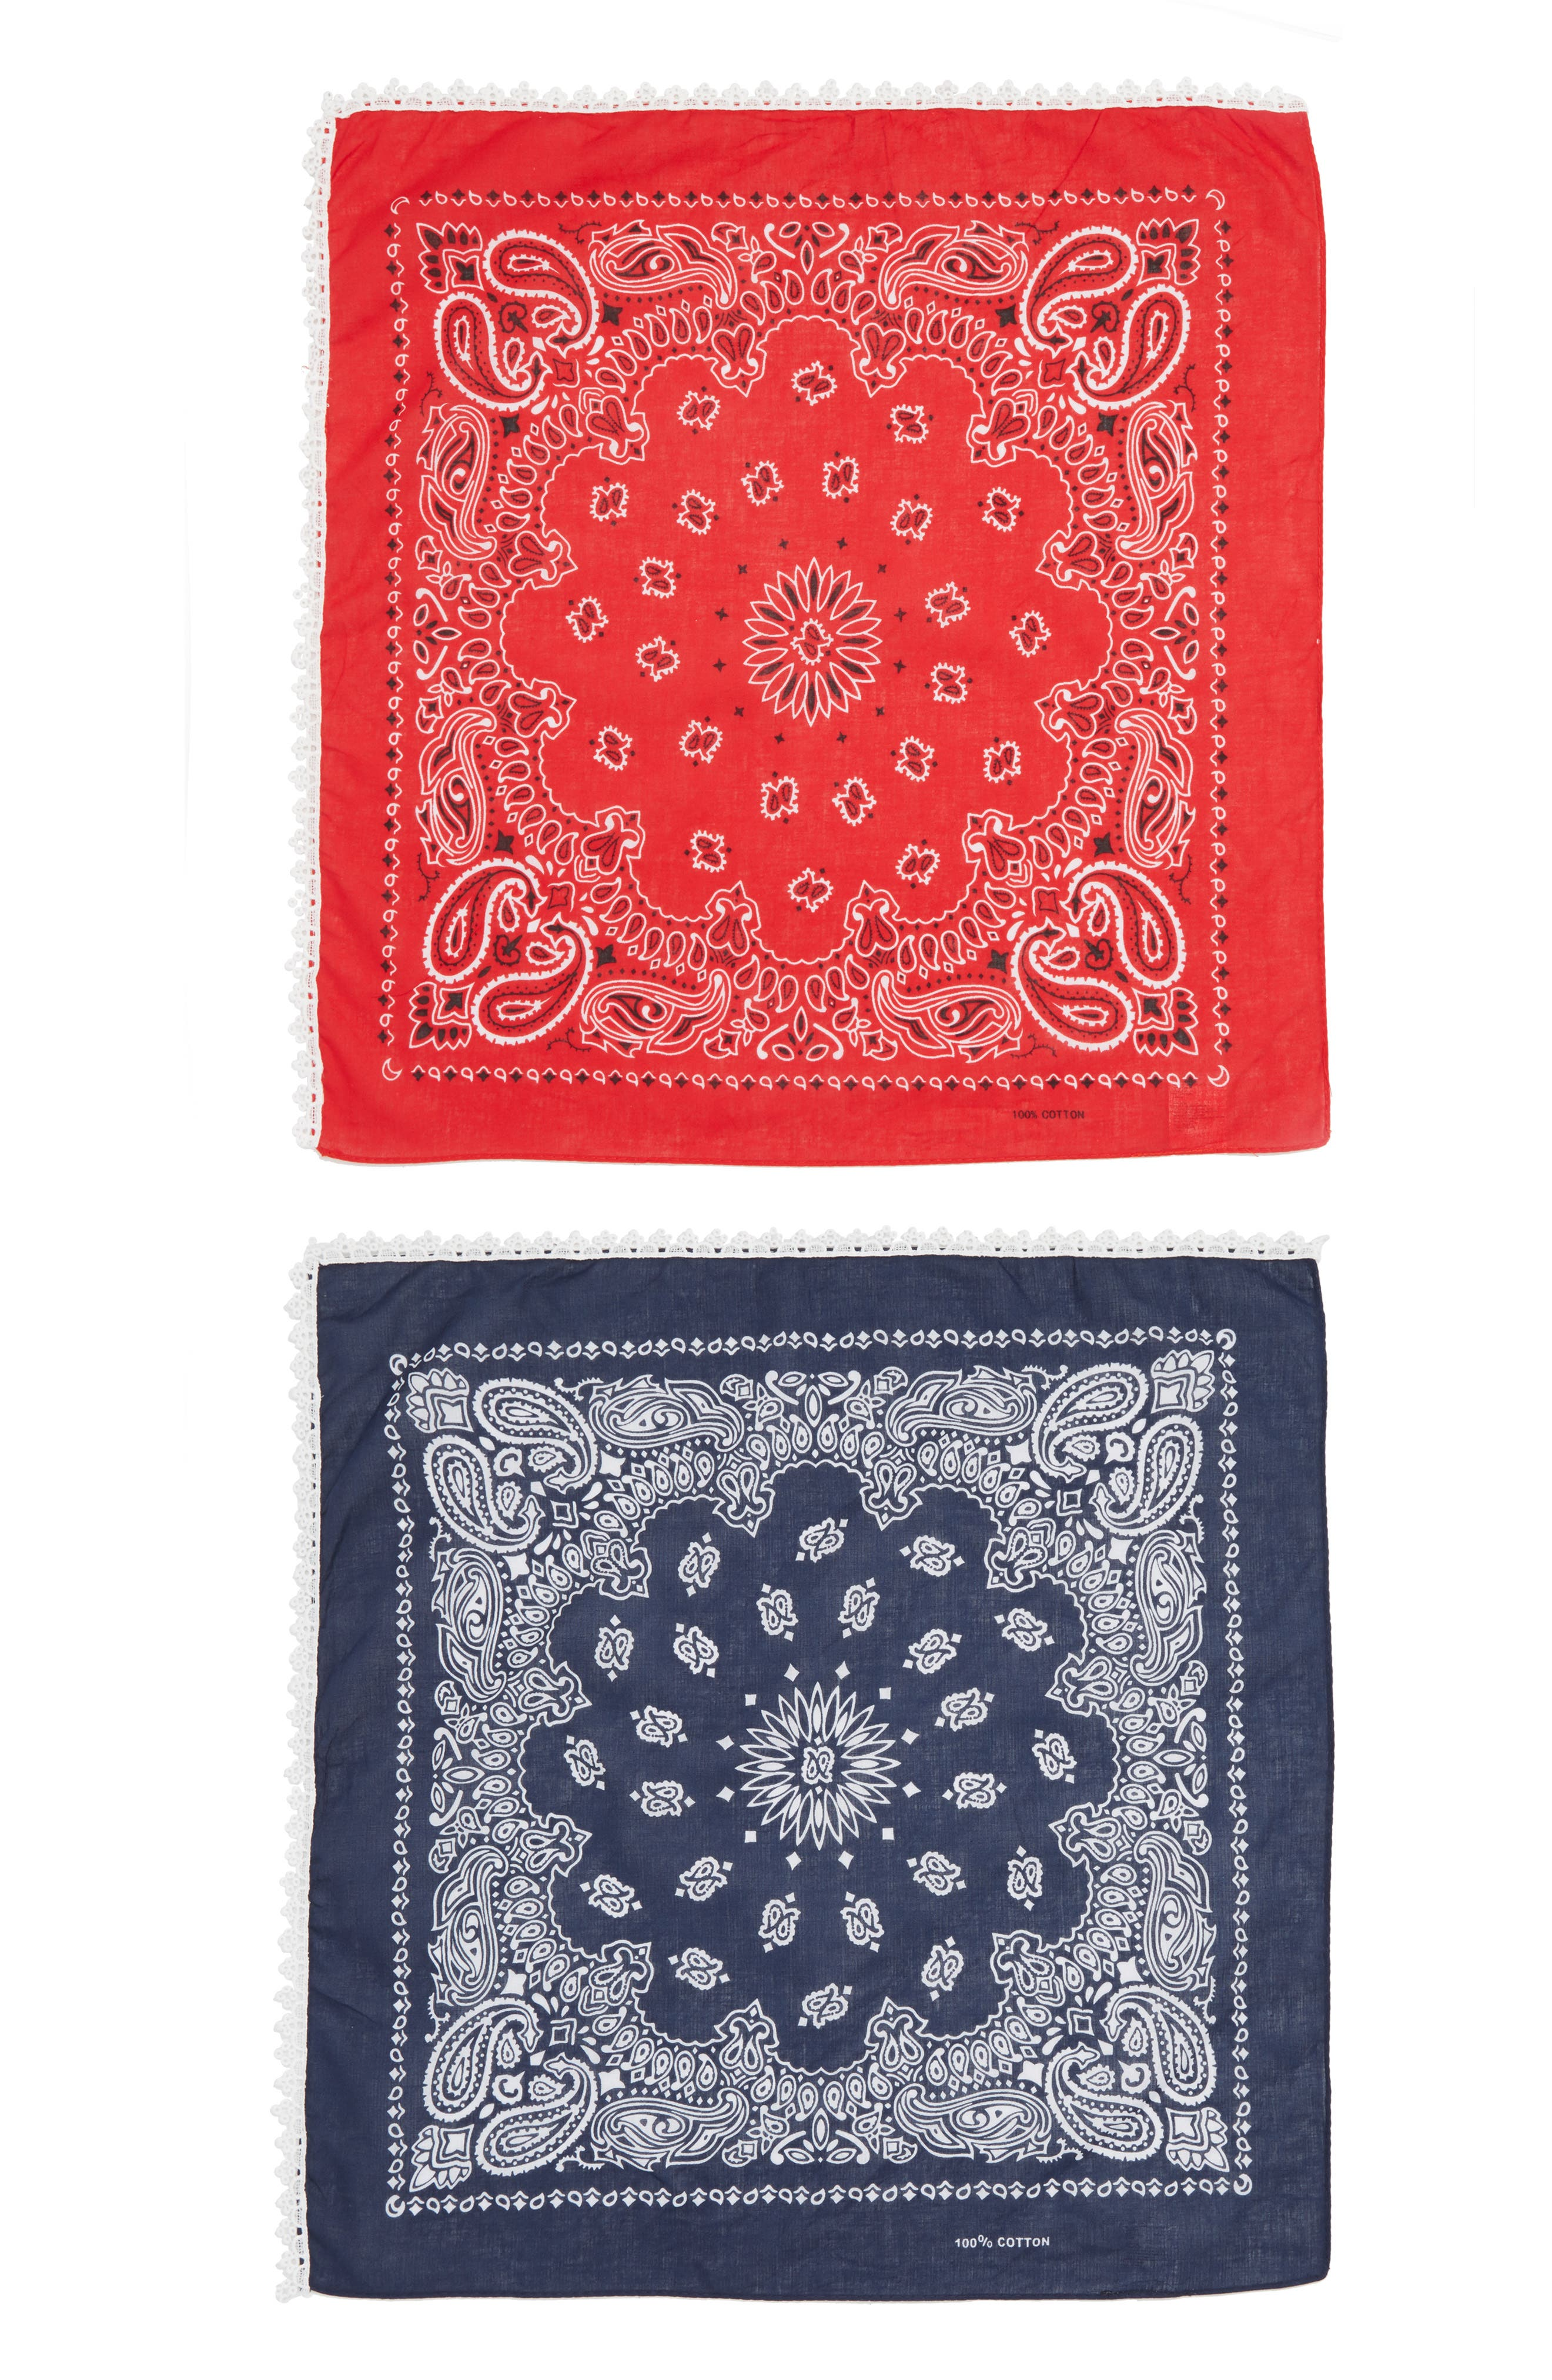 CAPELLI NEW YORK,                             Capelli of New York 2-Pack Lace Trim Bandanas,                             Alternate thumbnail 2, color,                             401